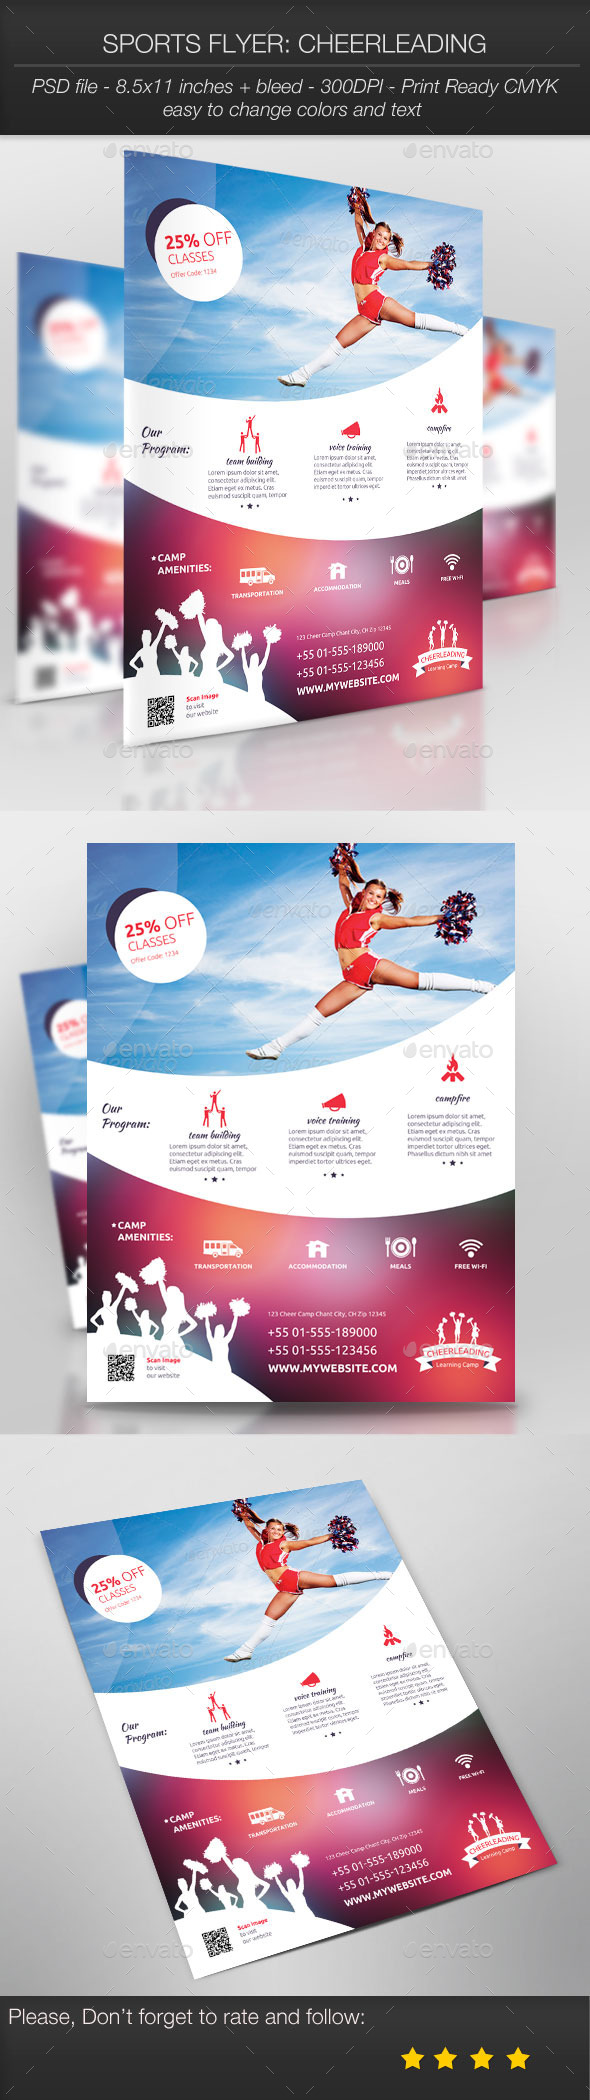 GraphicRiver Sports Flyer Cheerleading 9705413